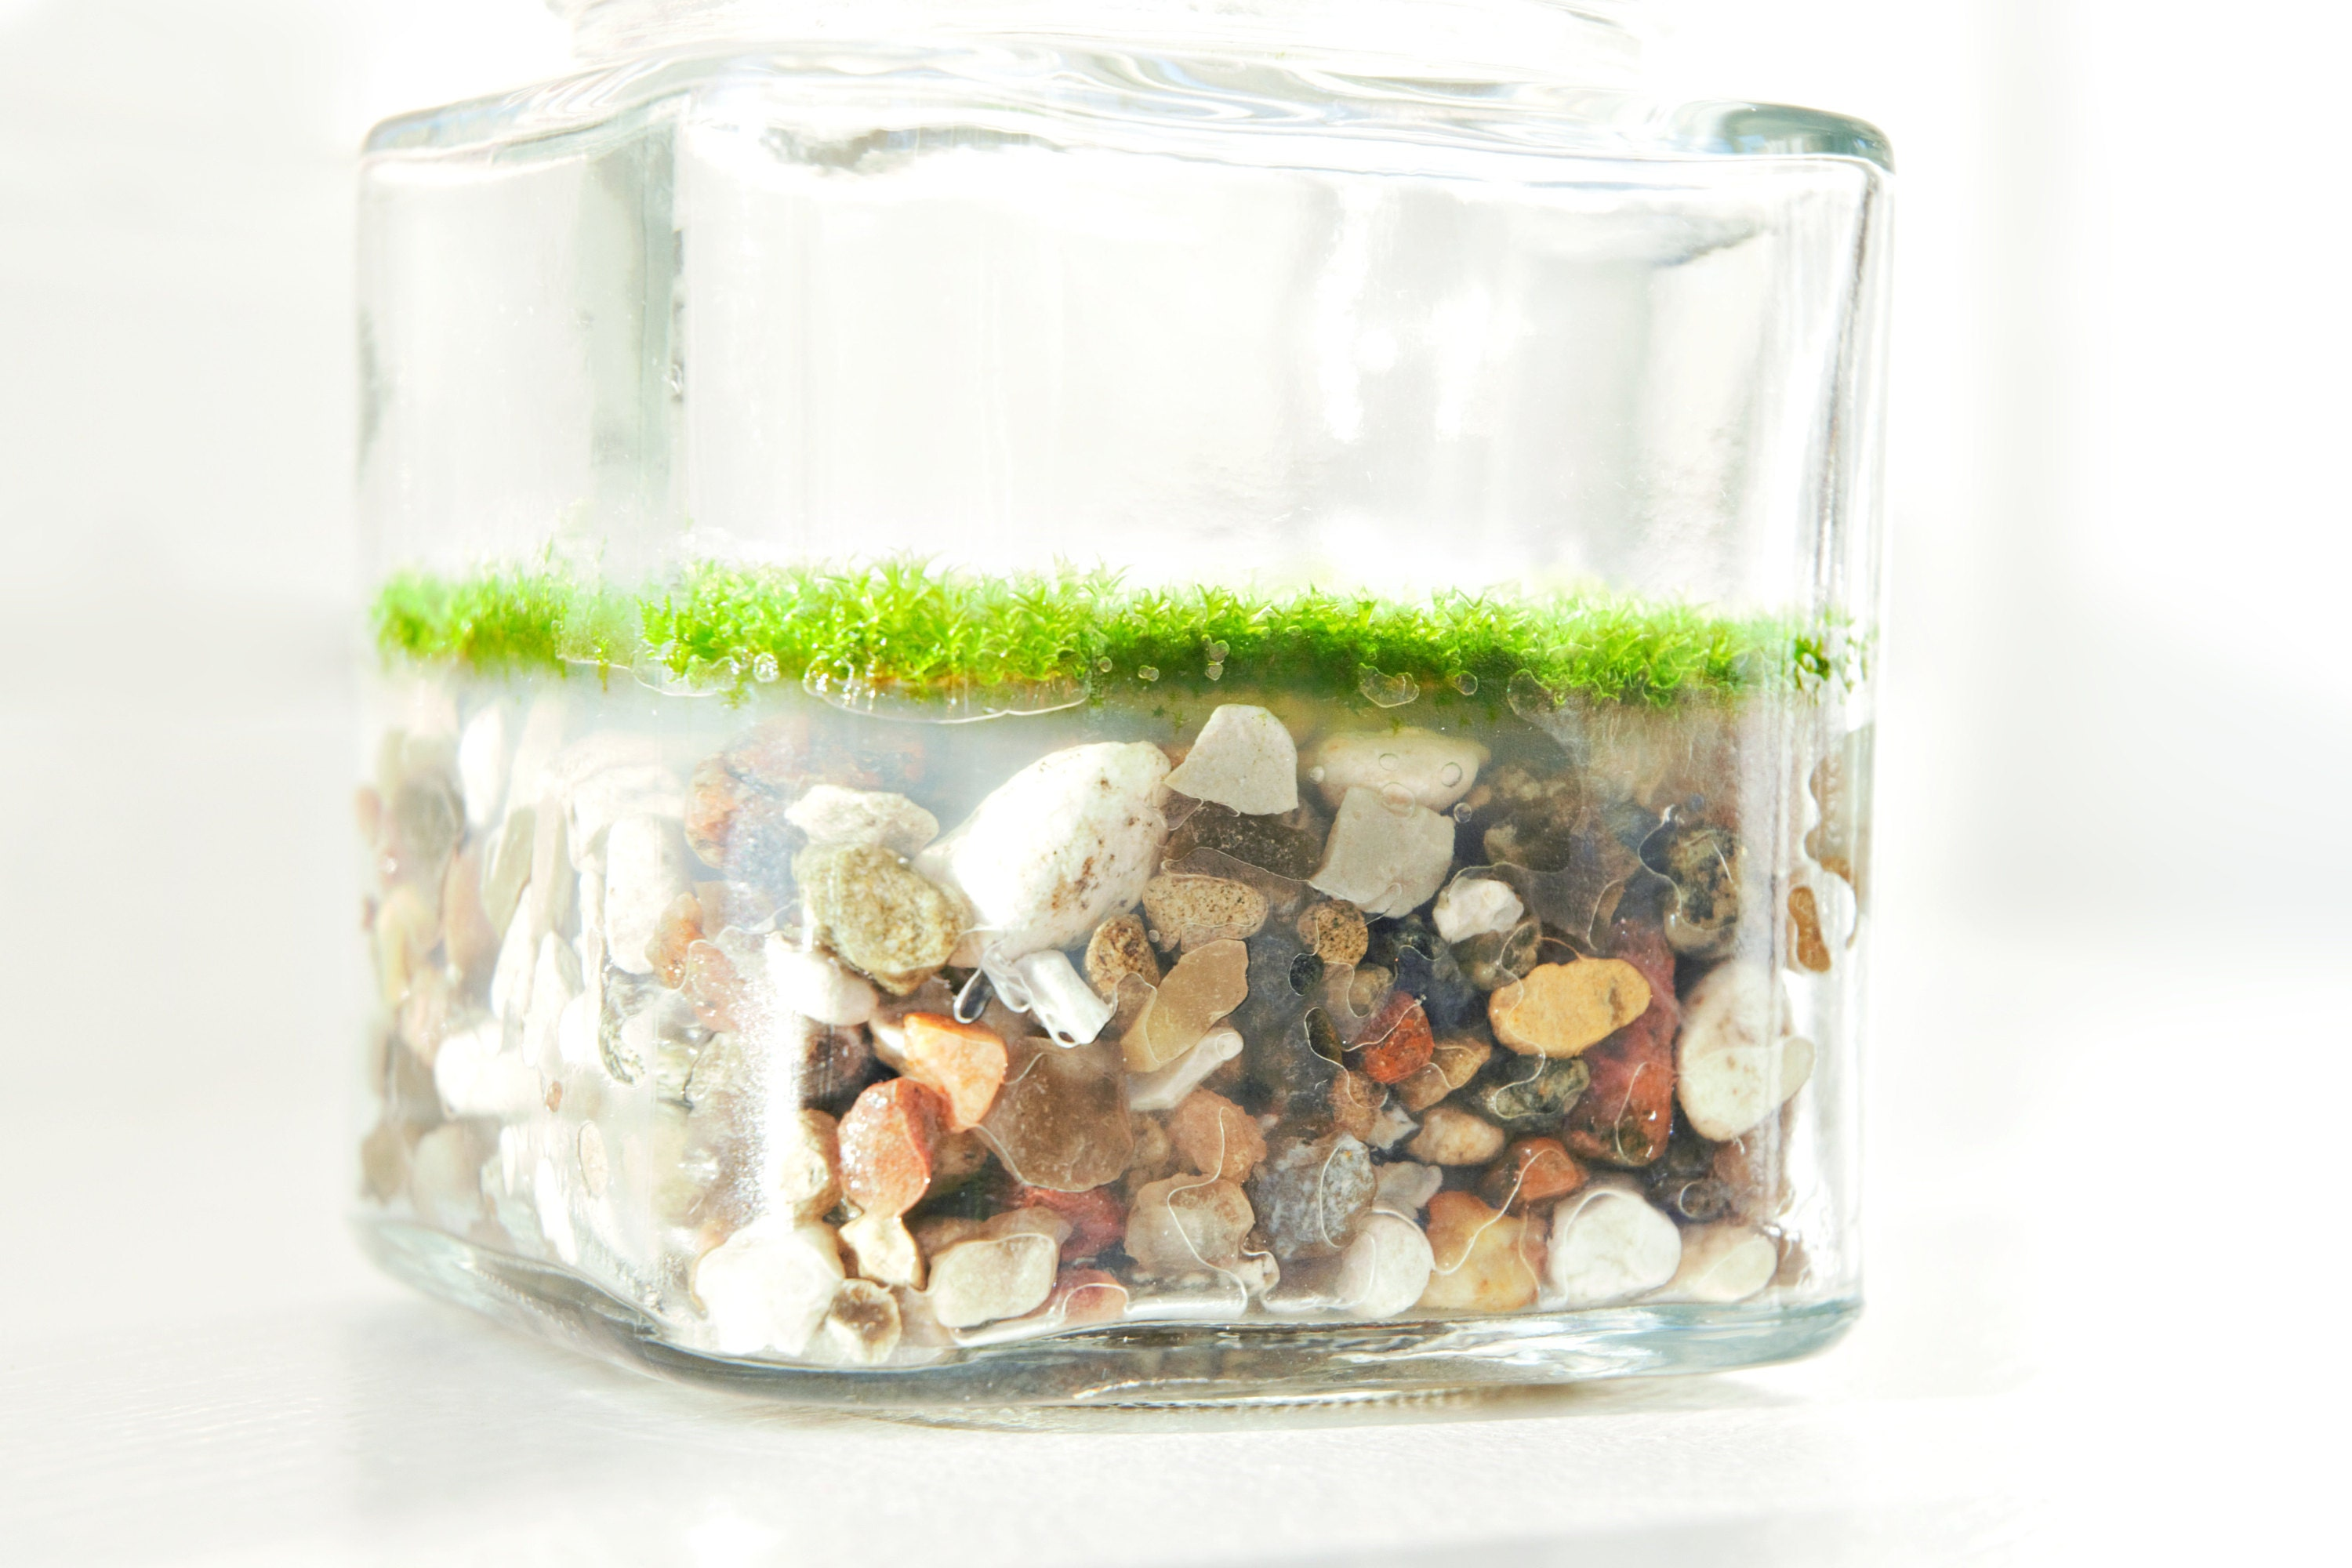 Square jar with moss